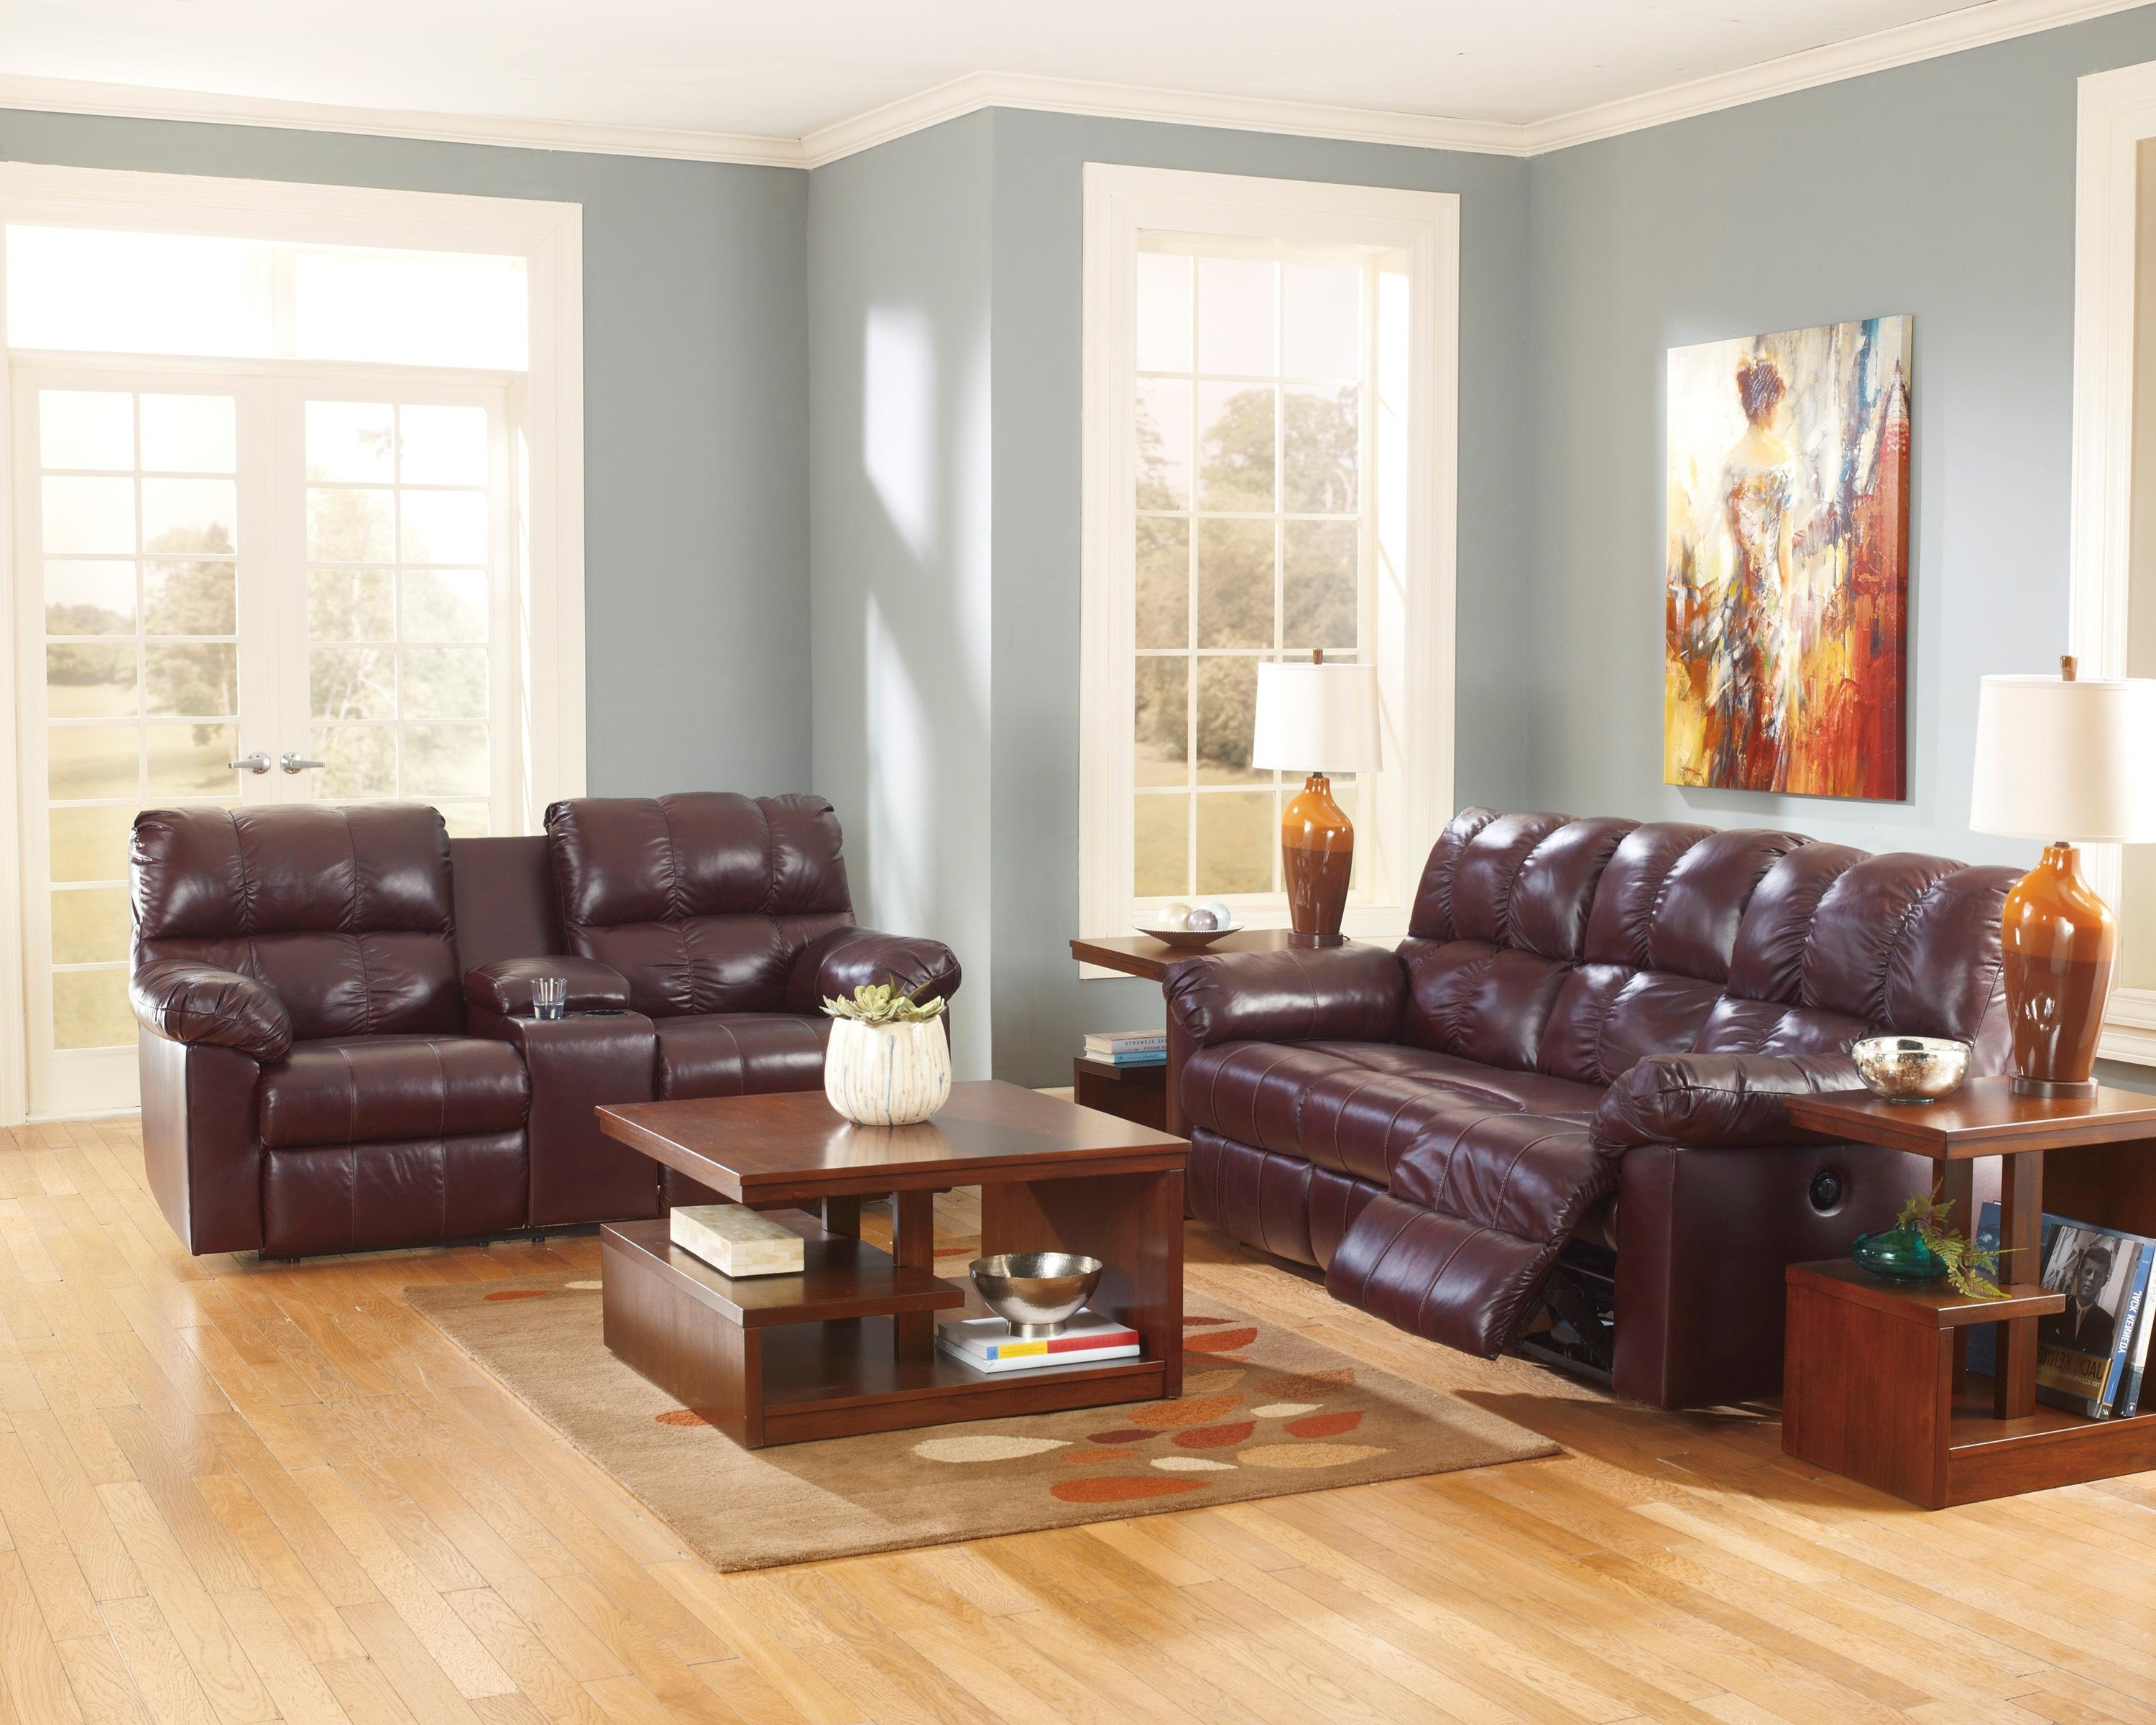 Sofas Center : Top Grain Leather Reclining Sofa Berkline With High With Regard To Berkline Sofa (View 17 of 20)